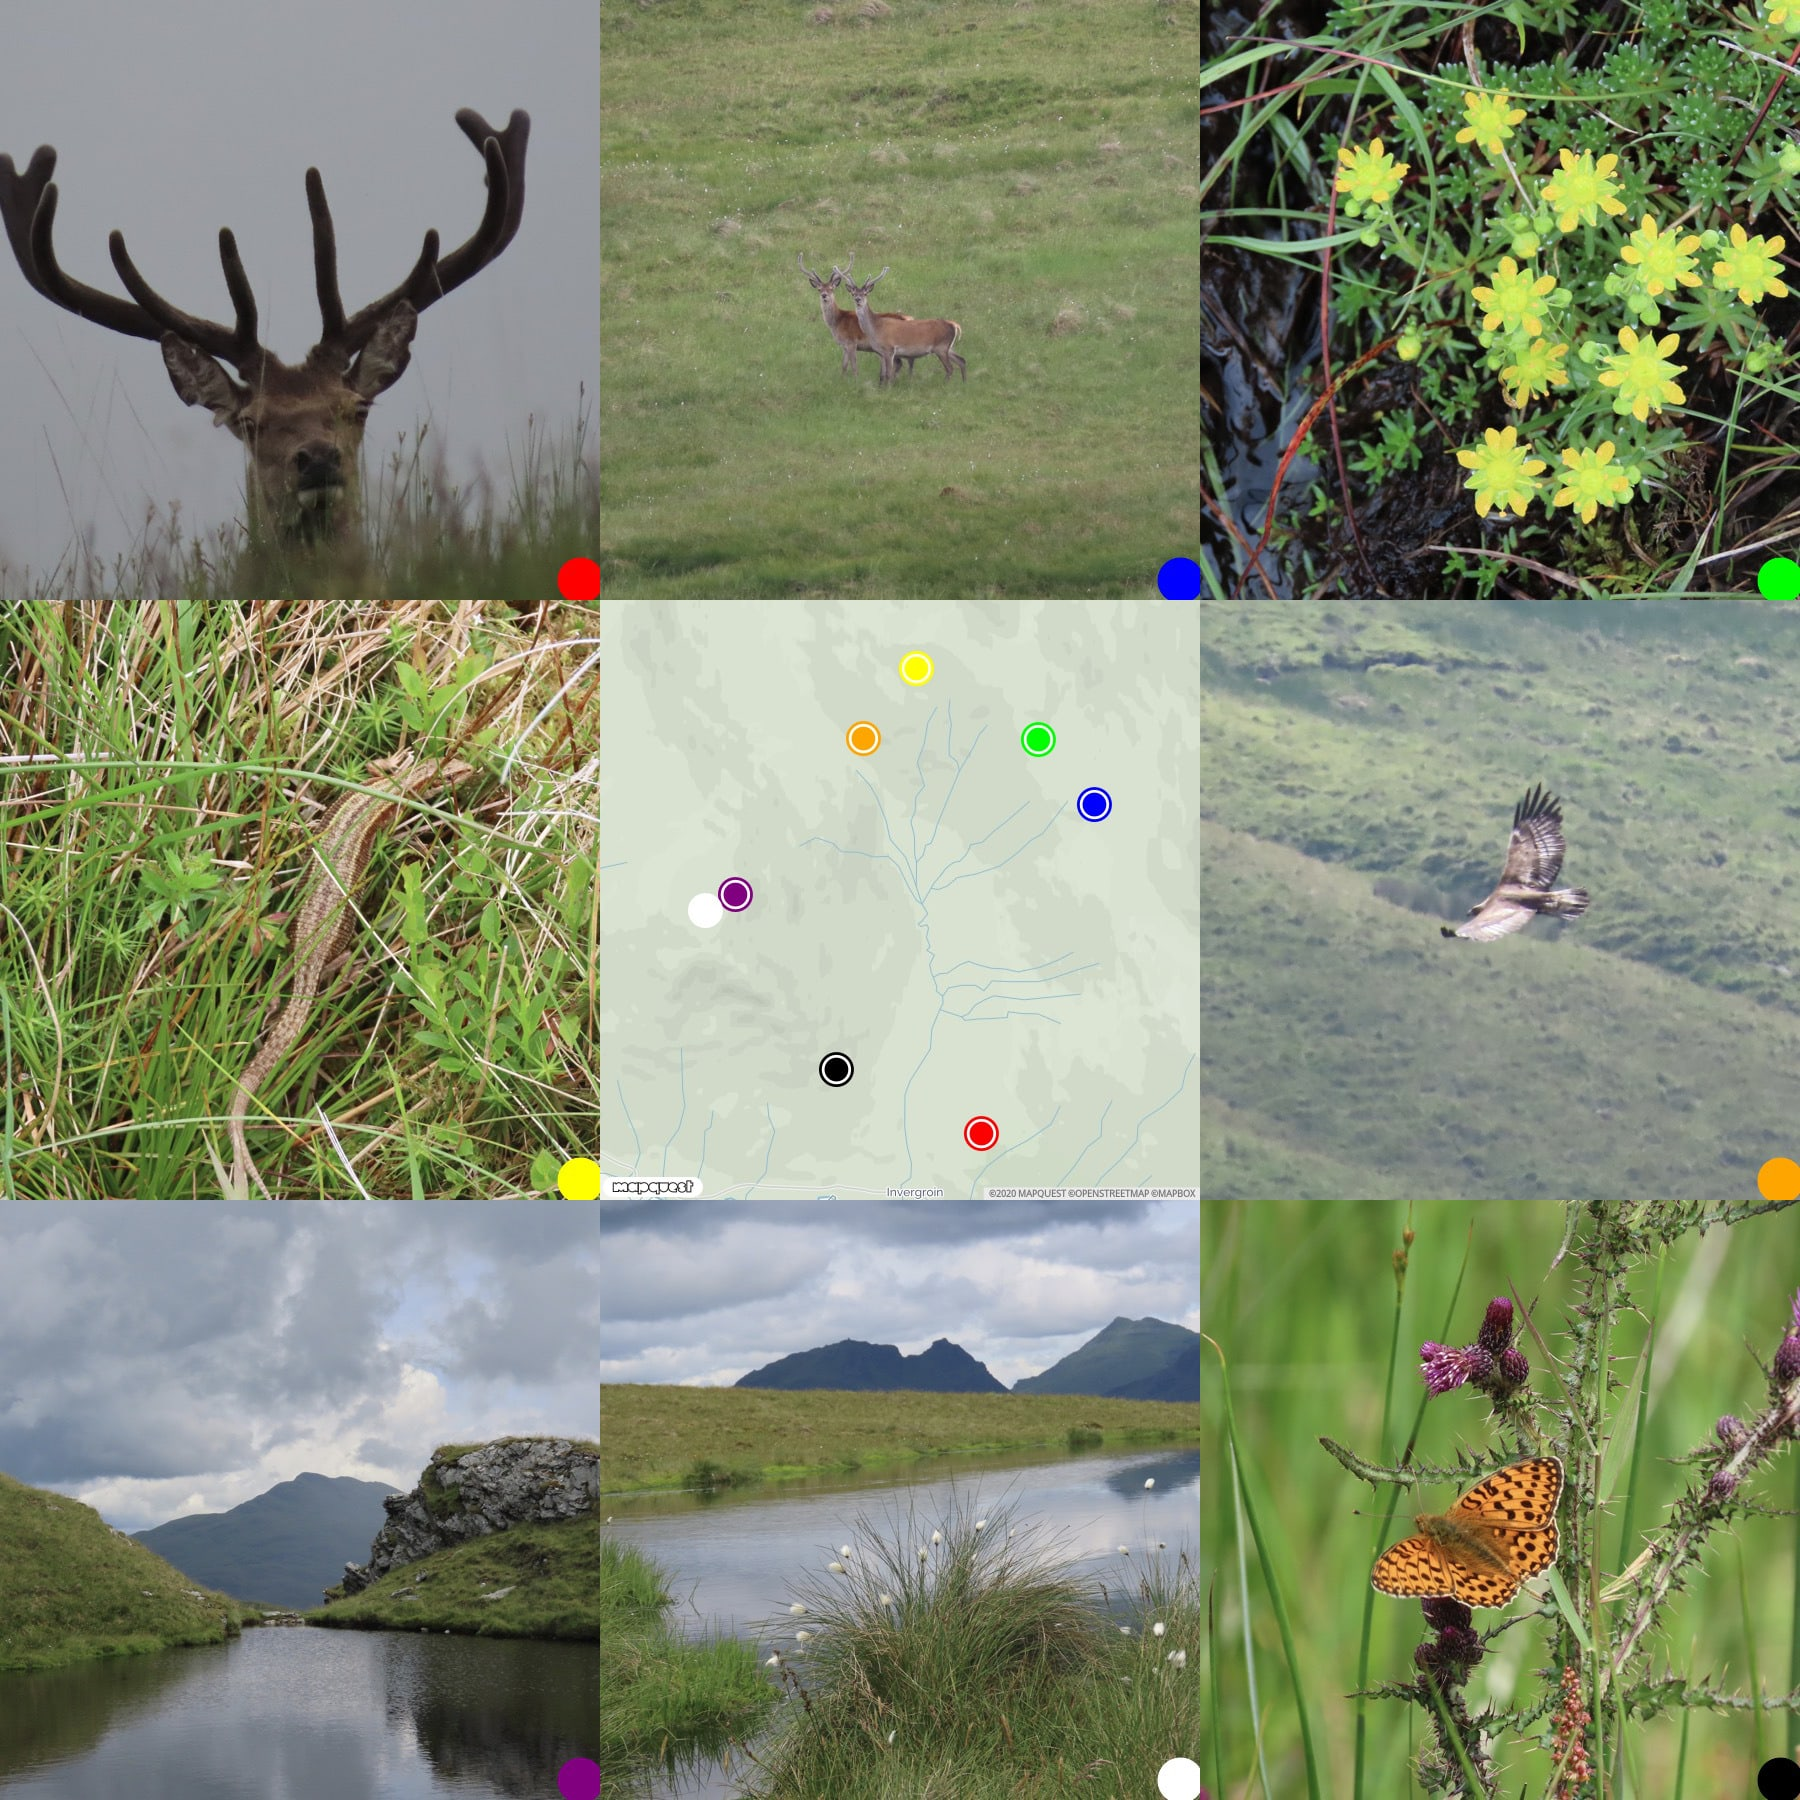 grid of photos around a map of Glen Douglas where they were taken. Read Deer, Sagifax, common lizard, eagle,hills and butterfly.